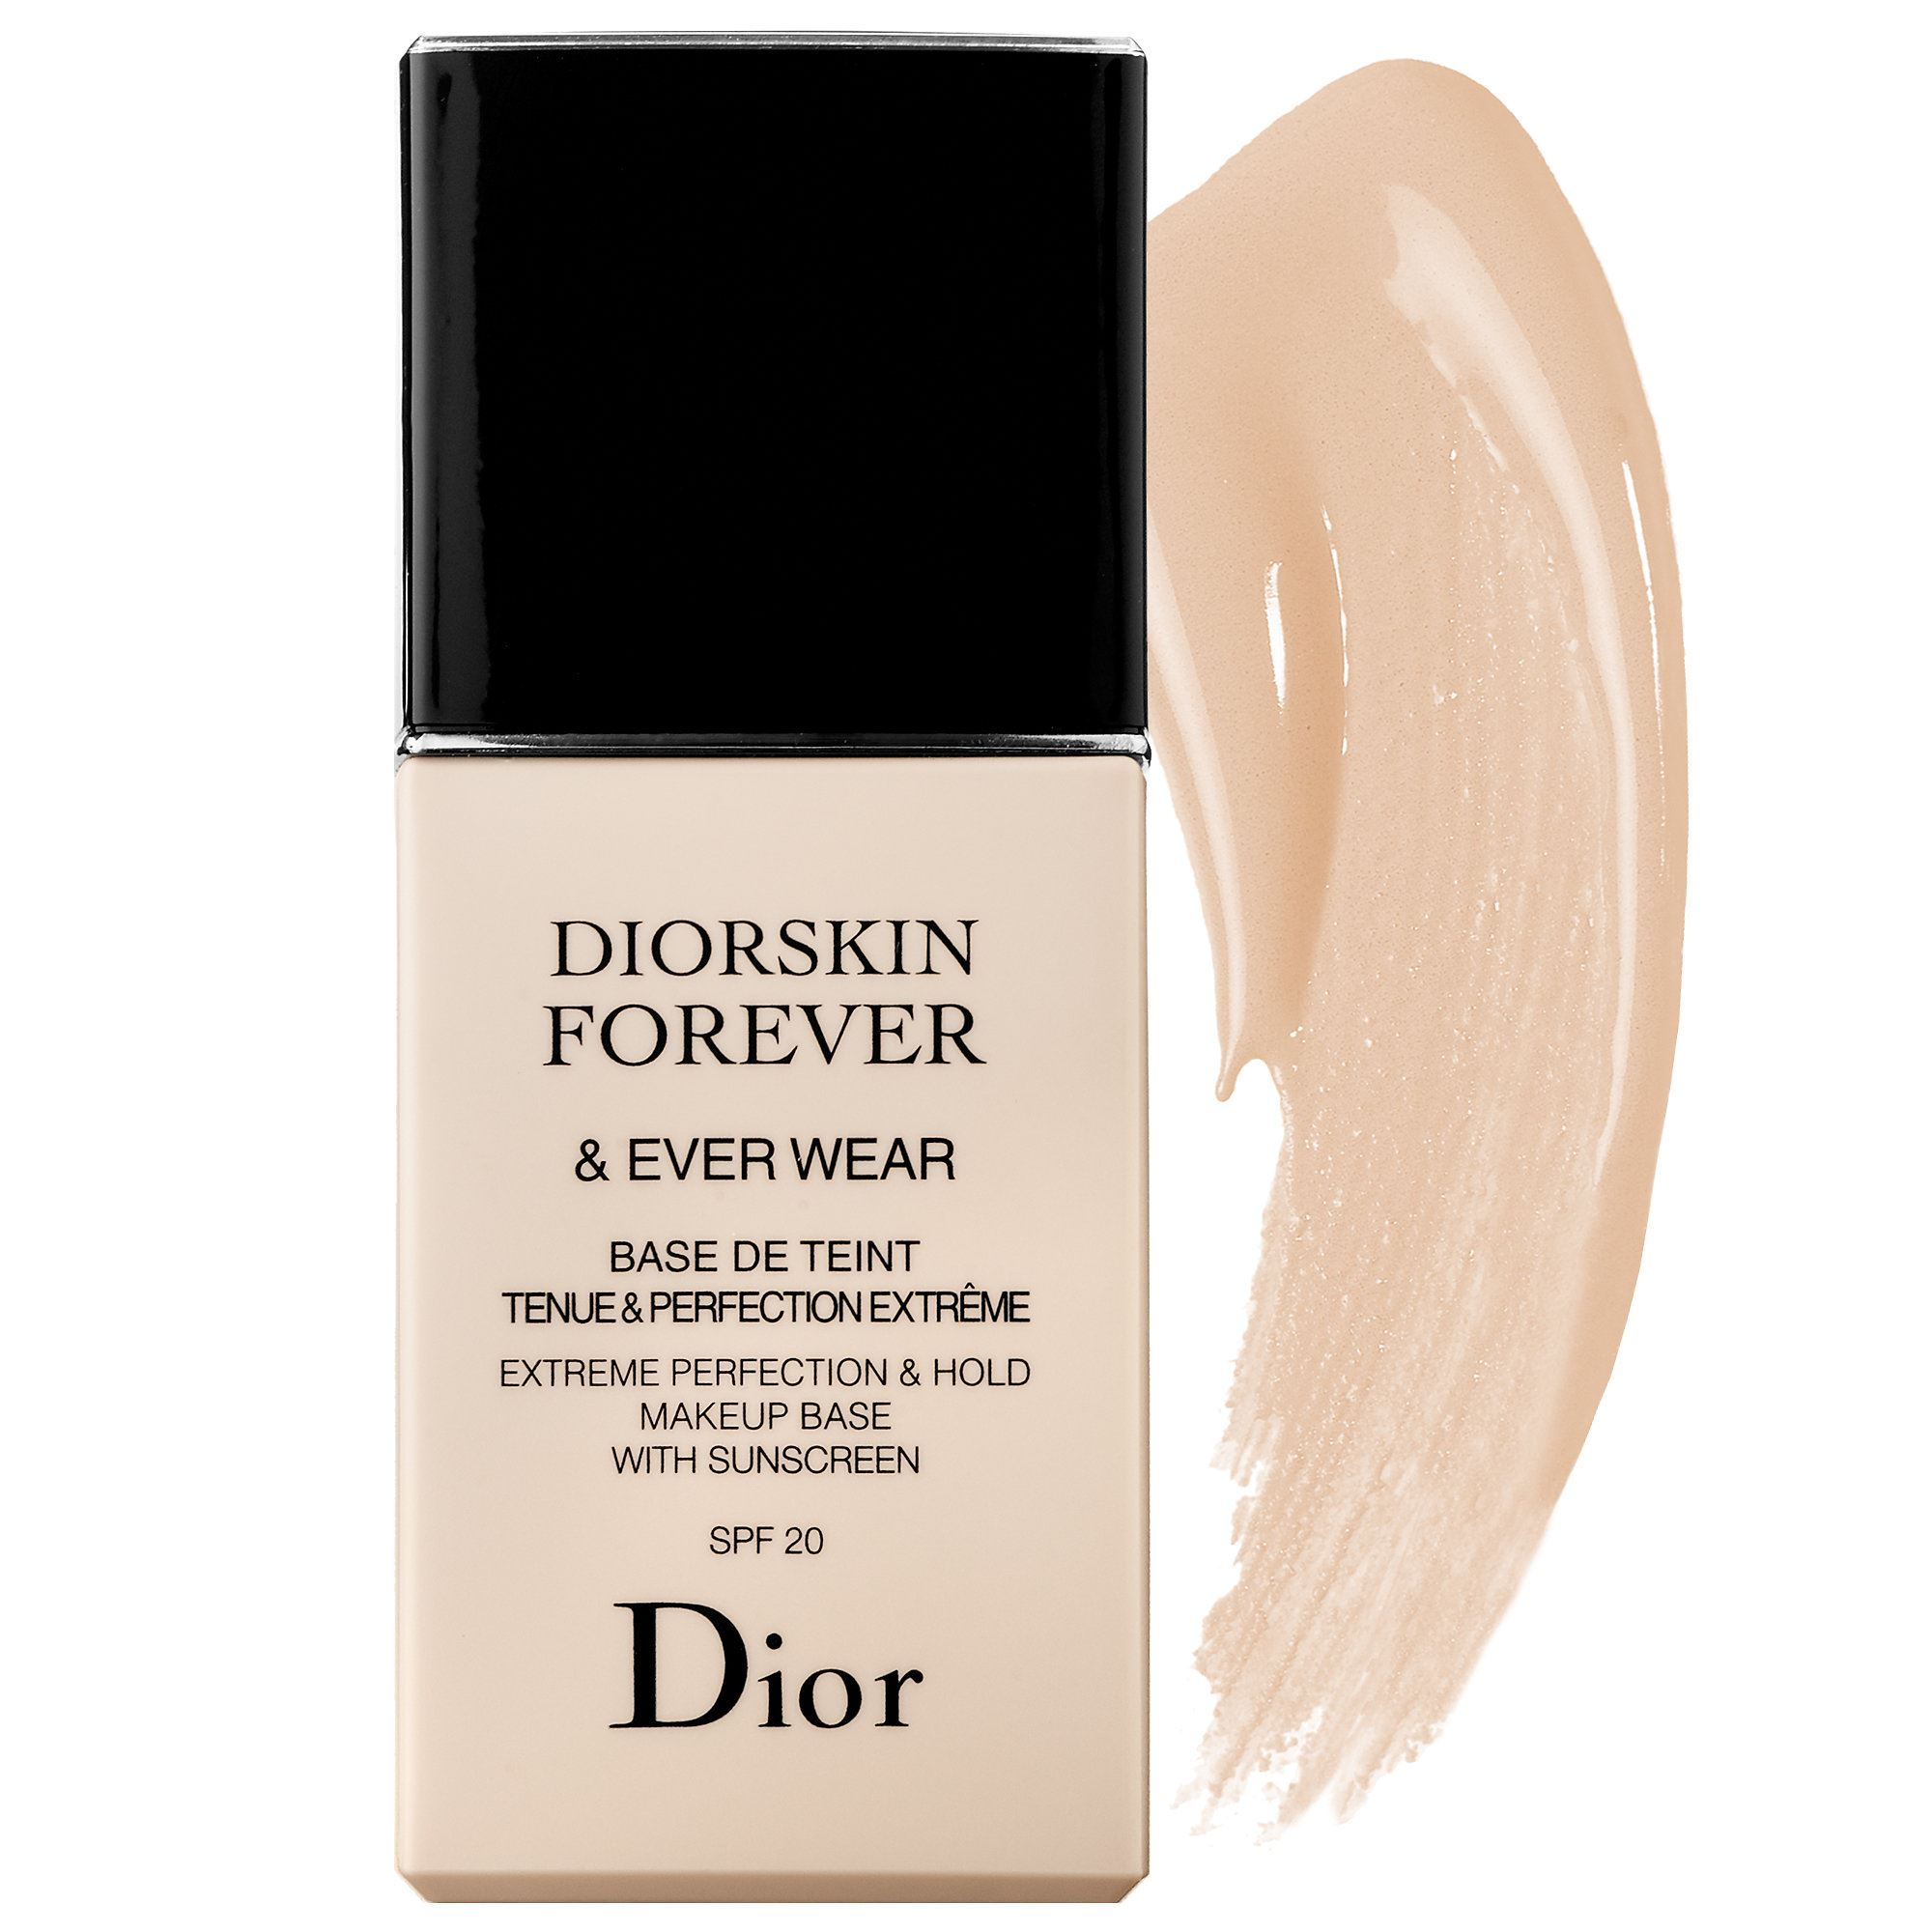 dior diorskin forever amp ever wear extreme perfection